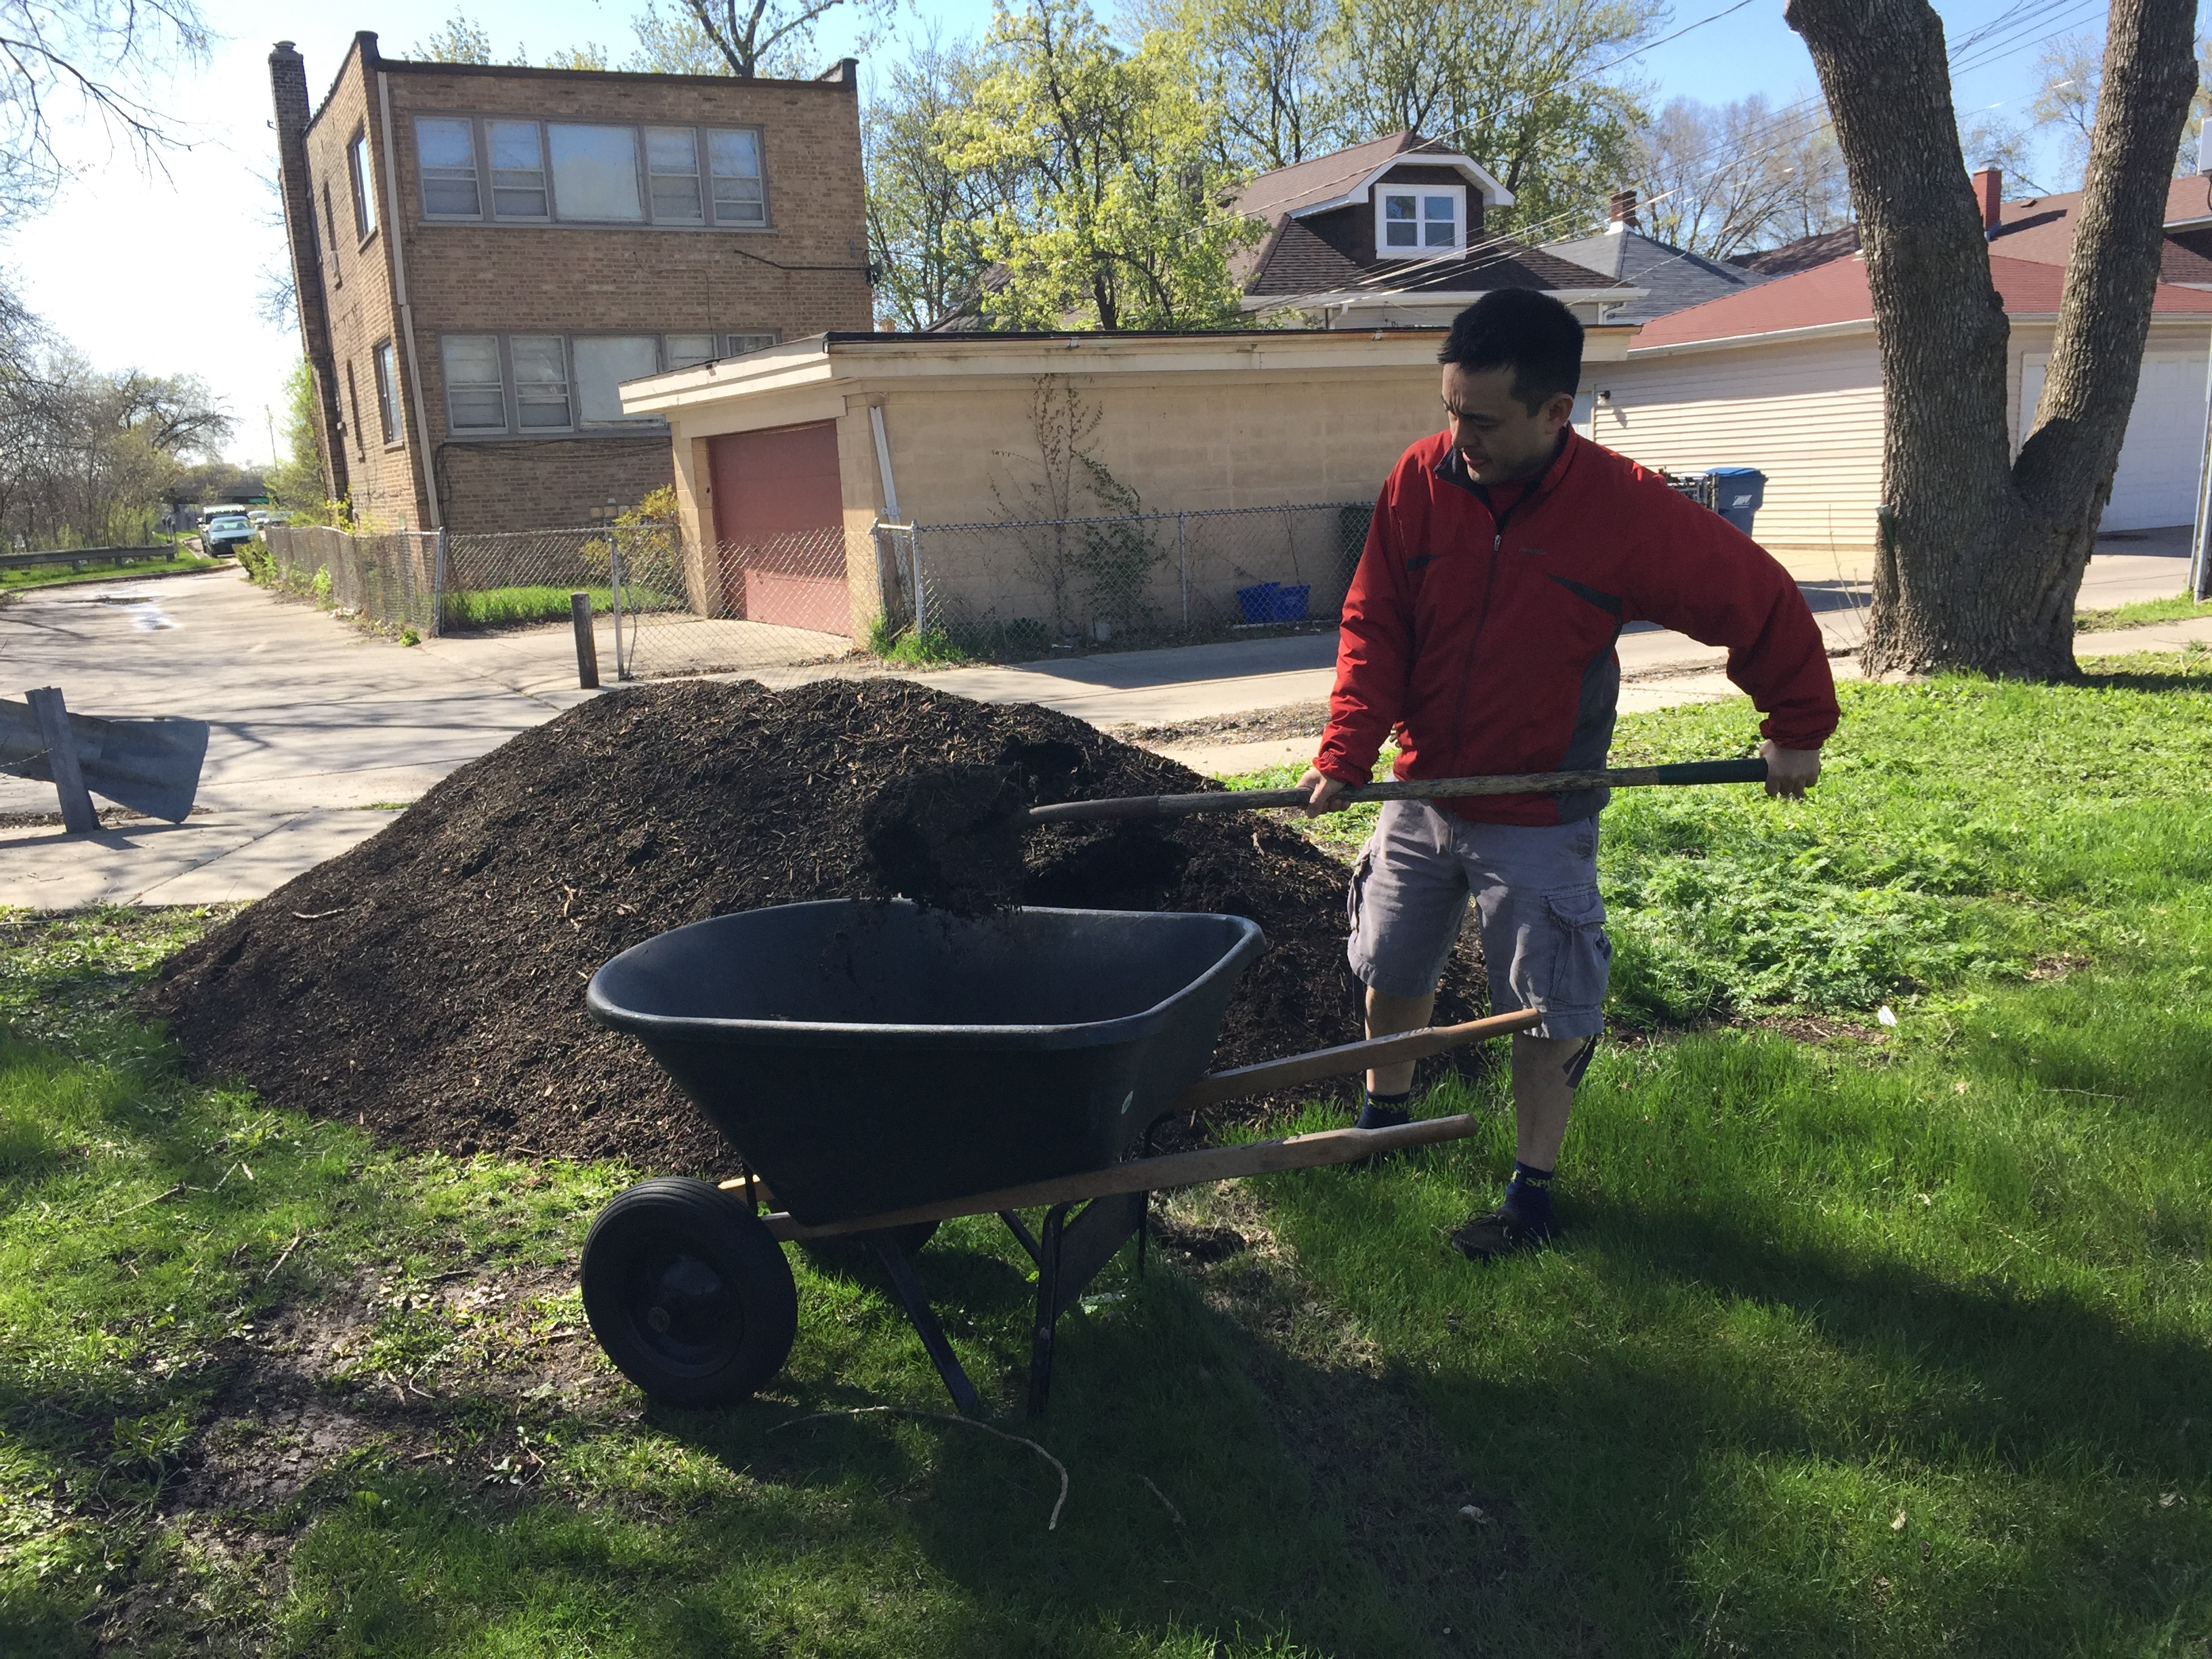 plot #6, forest park community garden, mulching